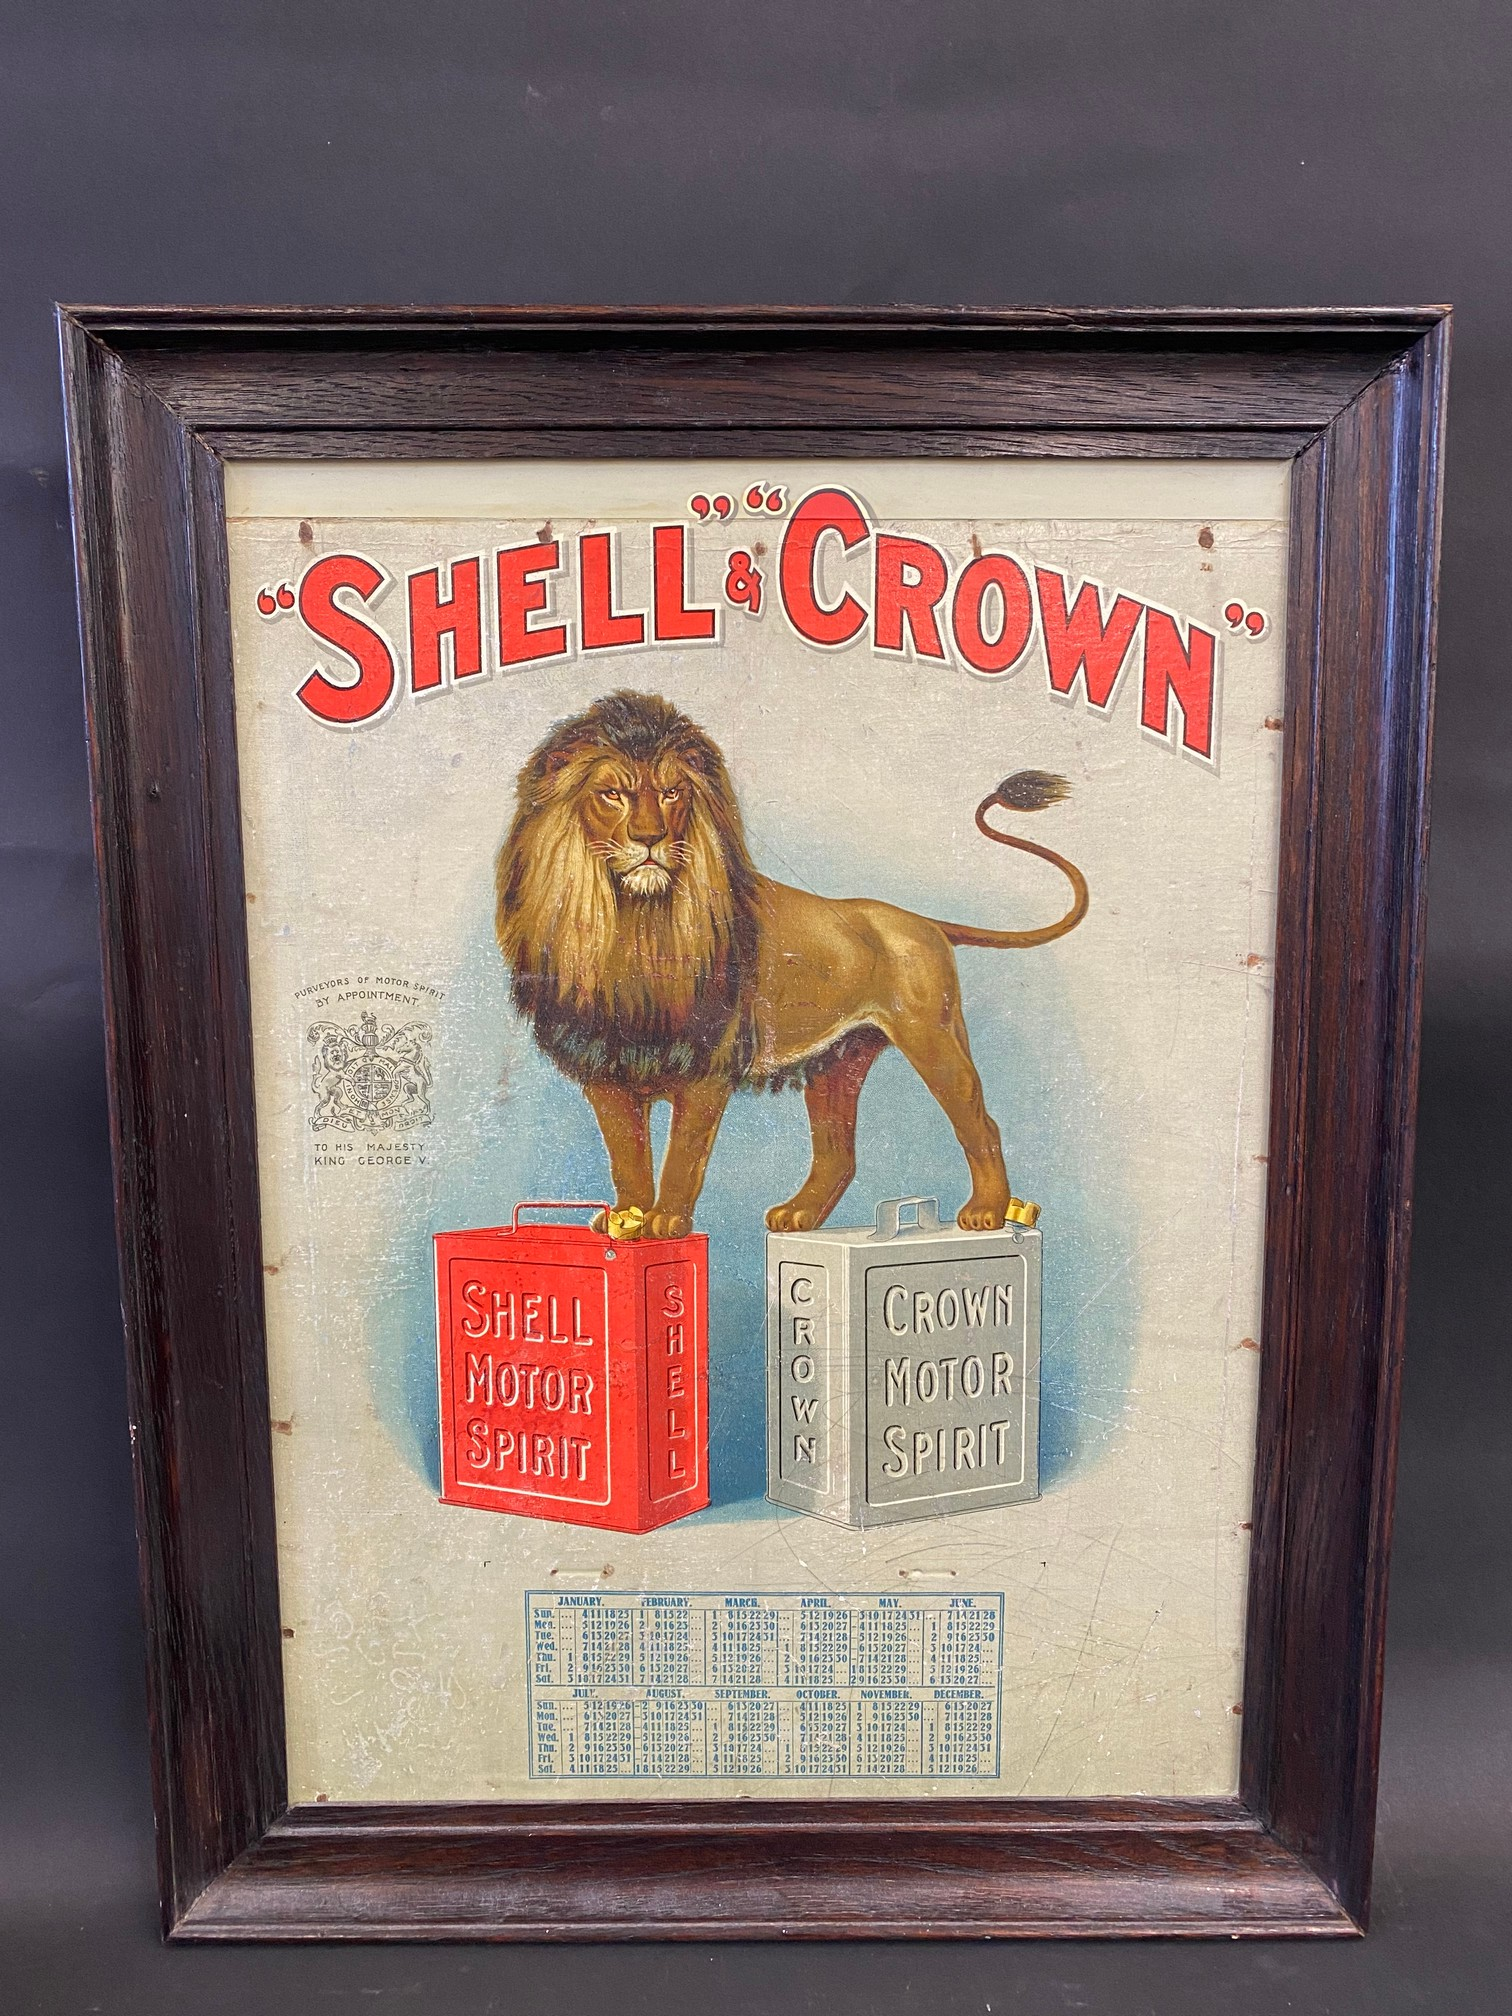 A very rare Shell and Crown Motor Spirit pictorial showcard depicting a lion stood astride a pair of